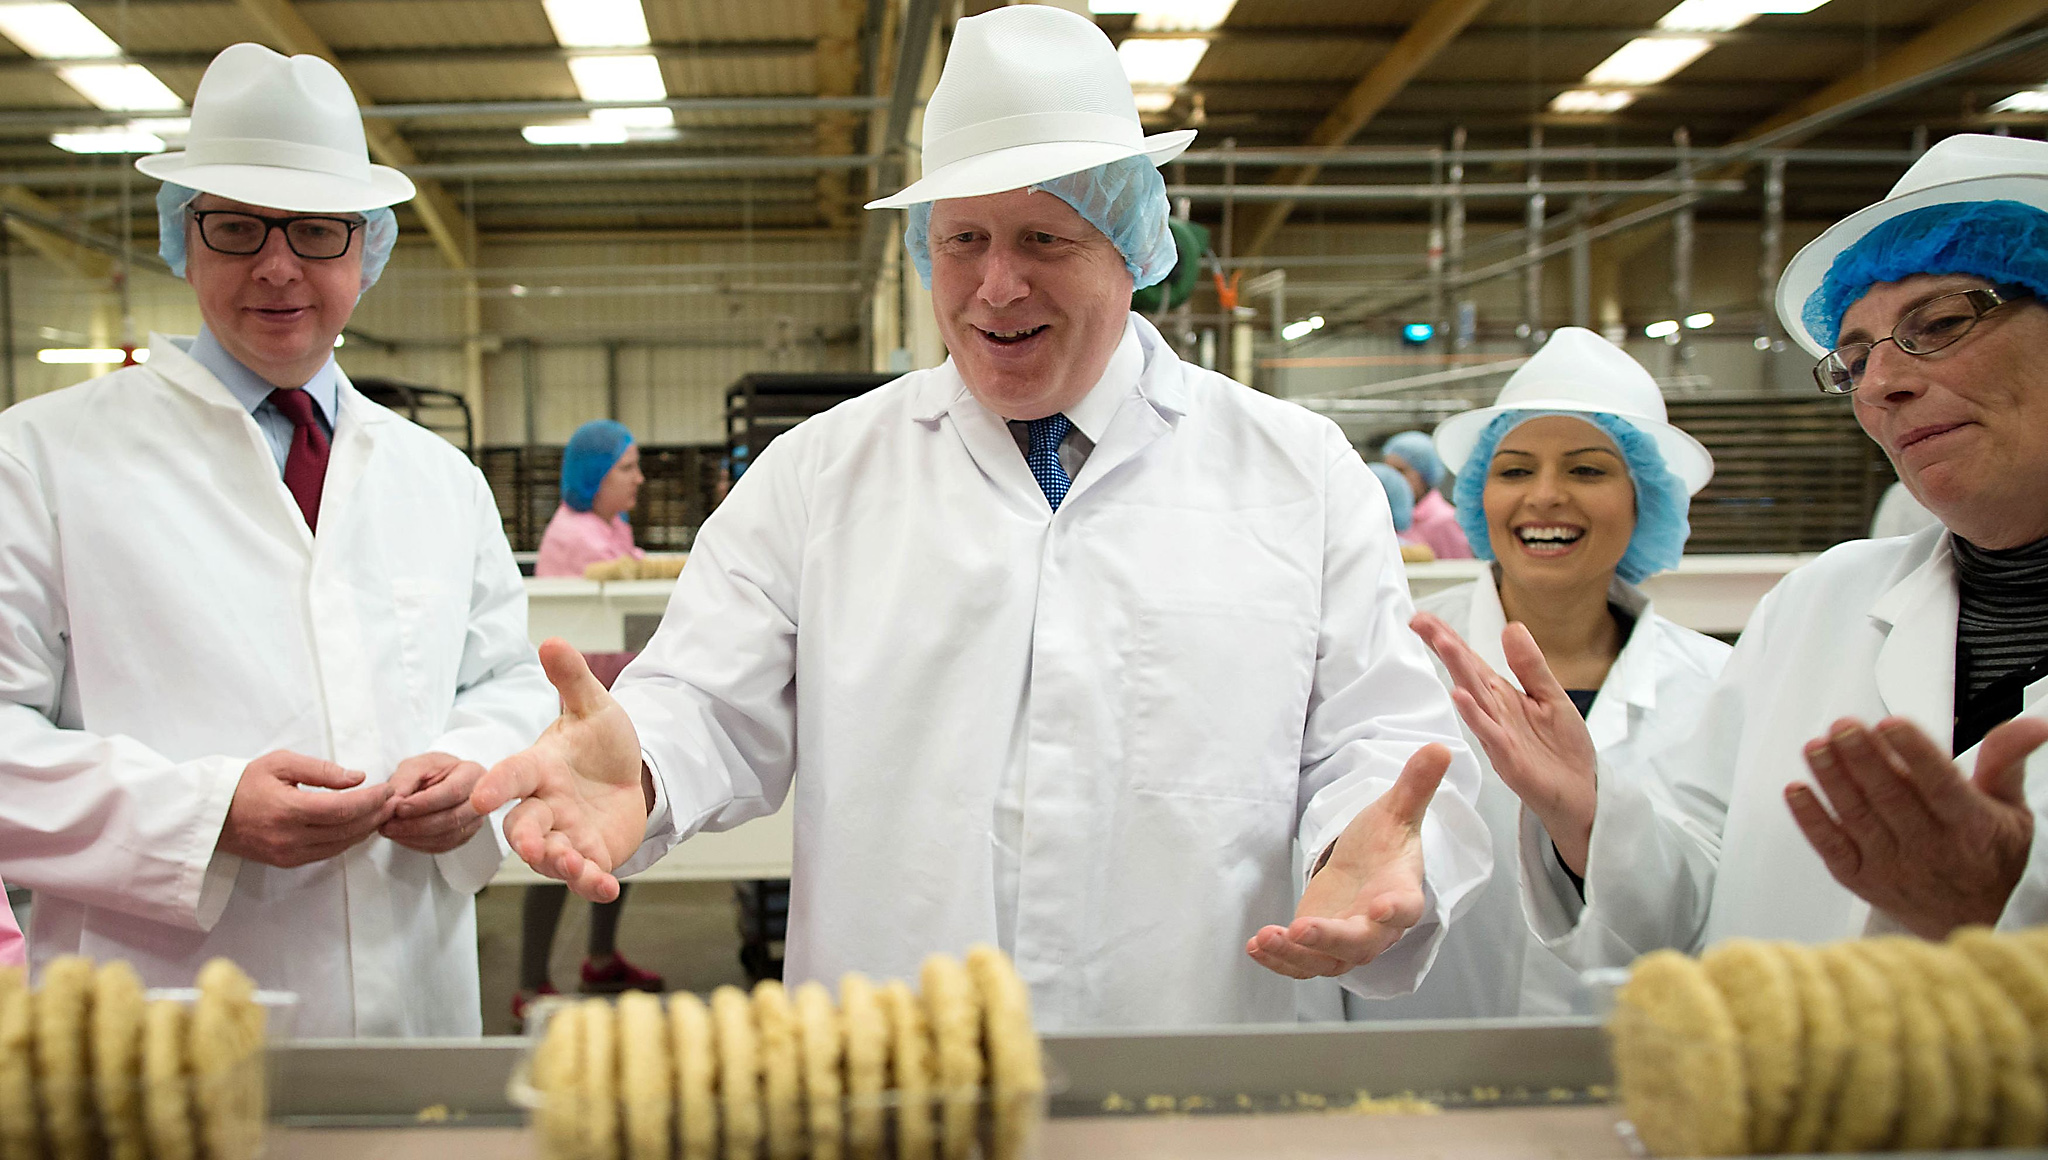 (from the left) Michael Gove, Boris Johnson and Priti Patel during a visit to Farmhouse Biscuits in Nelson, Lancashire, where they were campaigning on behalf of the Vote Leave EU referendum campaign. PRESS ASSOCIATION Photo. Picture date: Thursday June 2, 2016. See PA story POLITICS EU. Photo credit should read: Stefan Rousseau/PA Wire